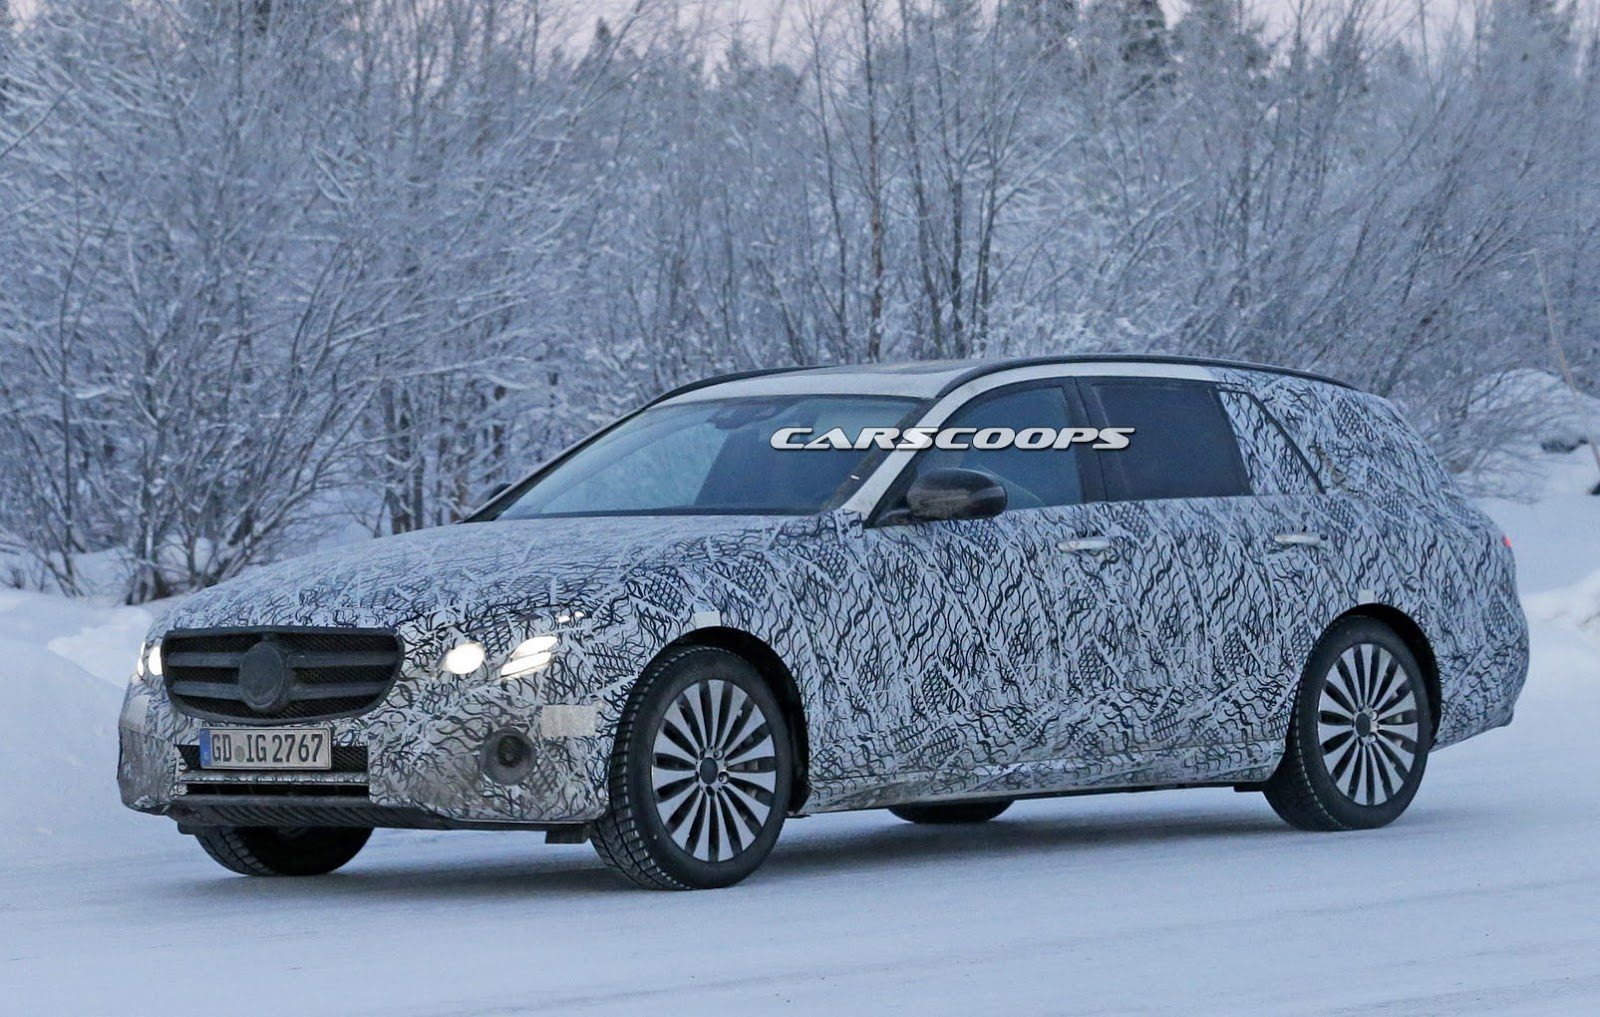 Mercedes v class gets full treatment from carlex design - Spied Mercedes Boots Up New 2017 E Class With Wagon Model